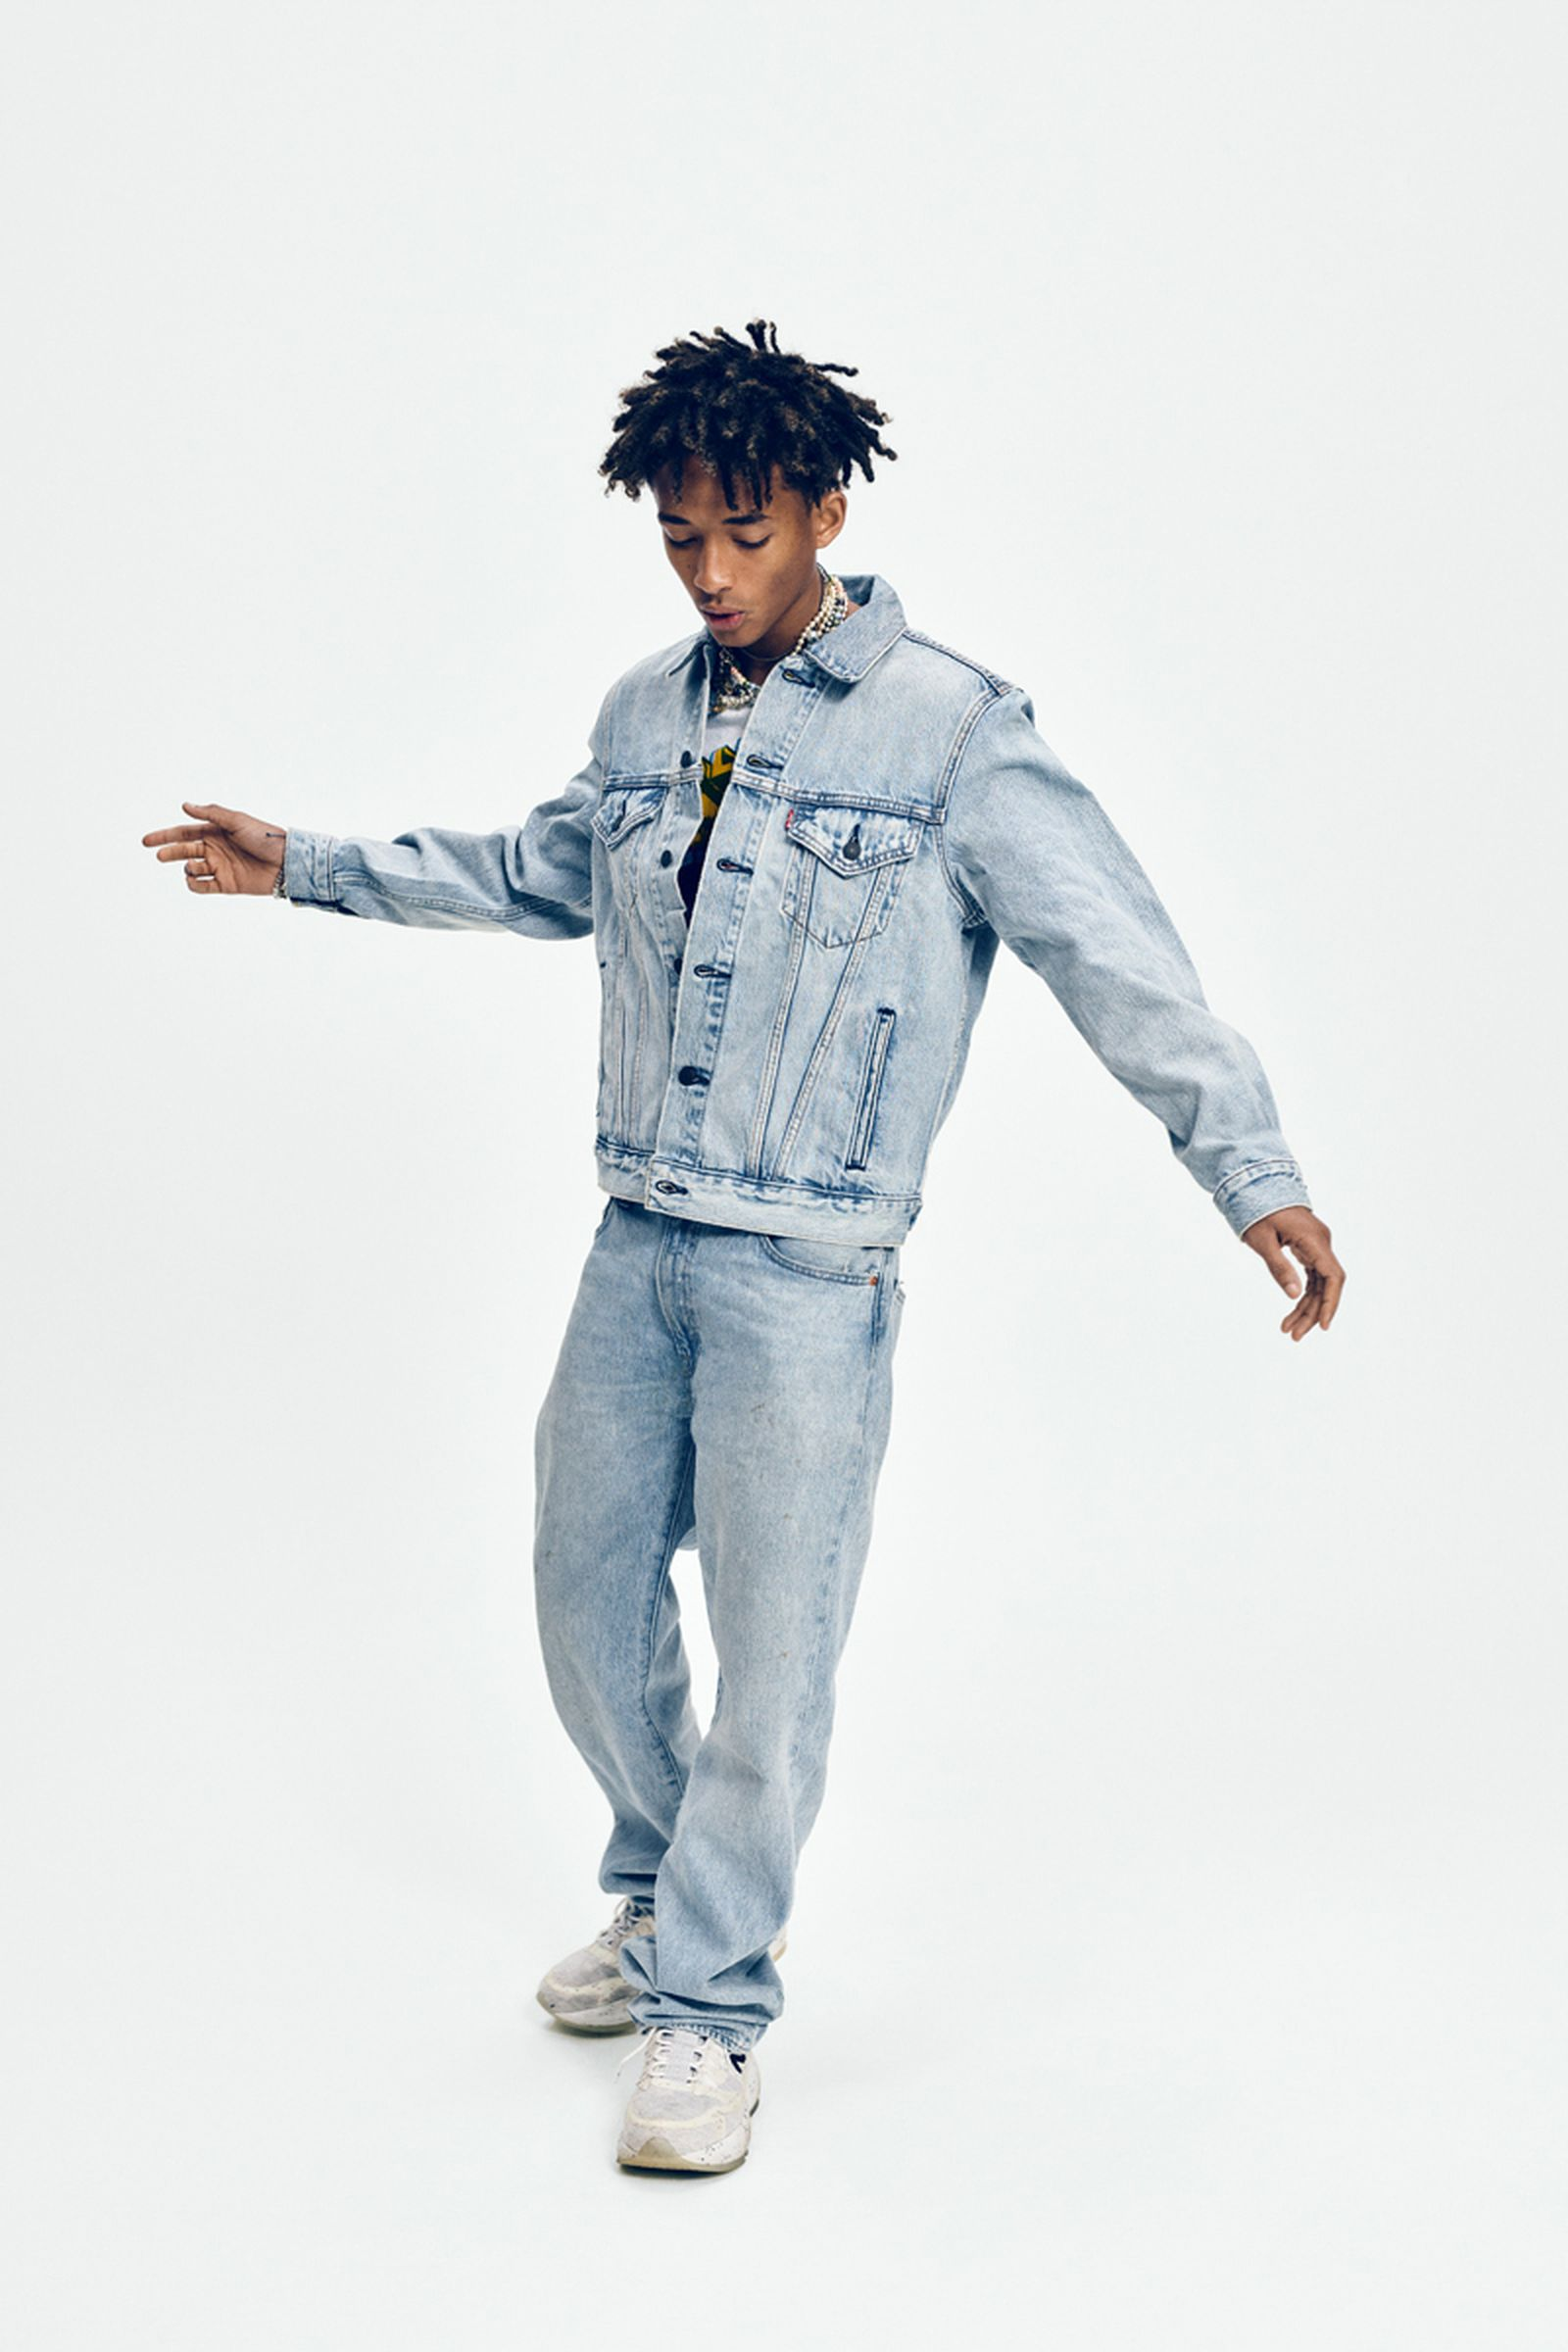 levis-501-day-2021-campaign- (3)